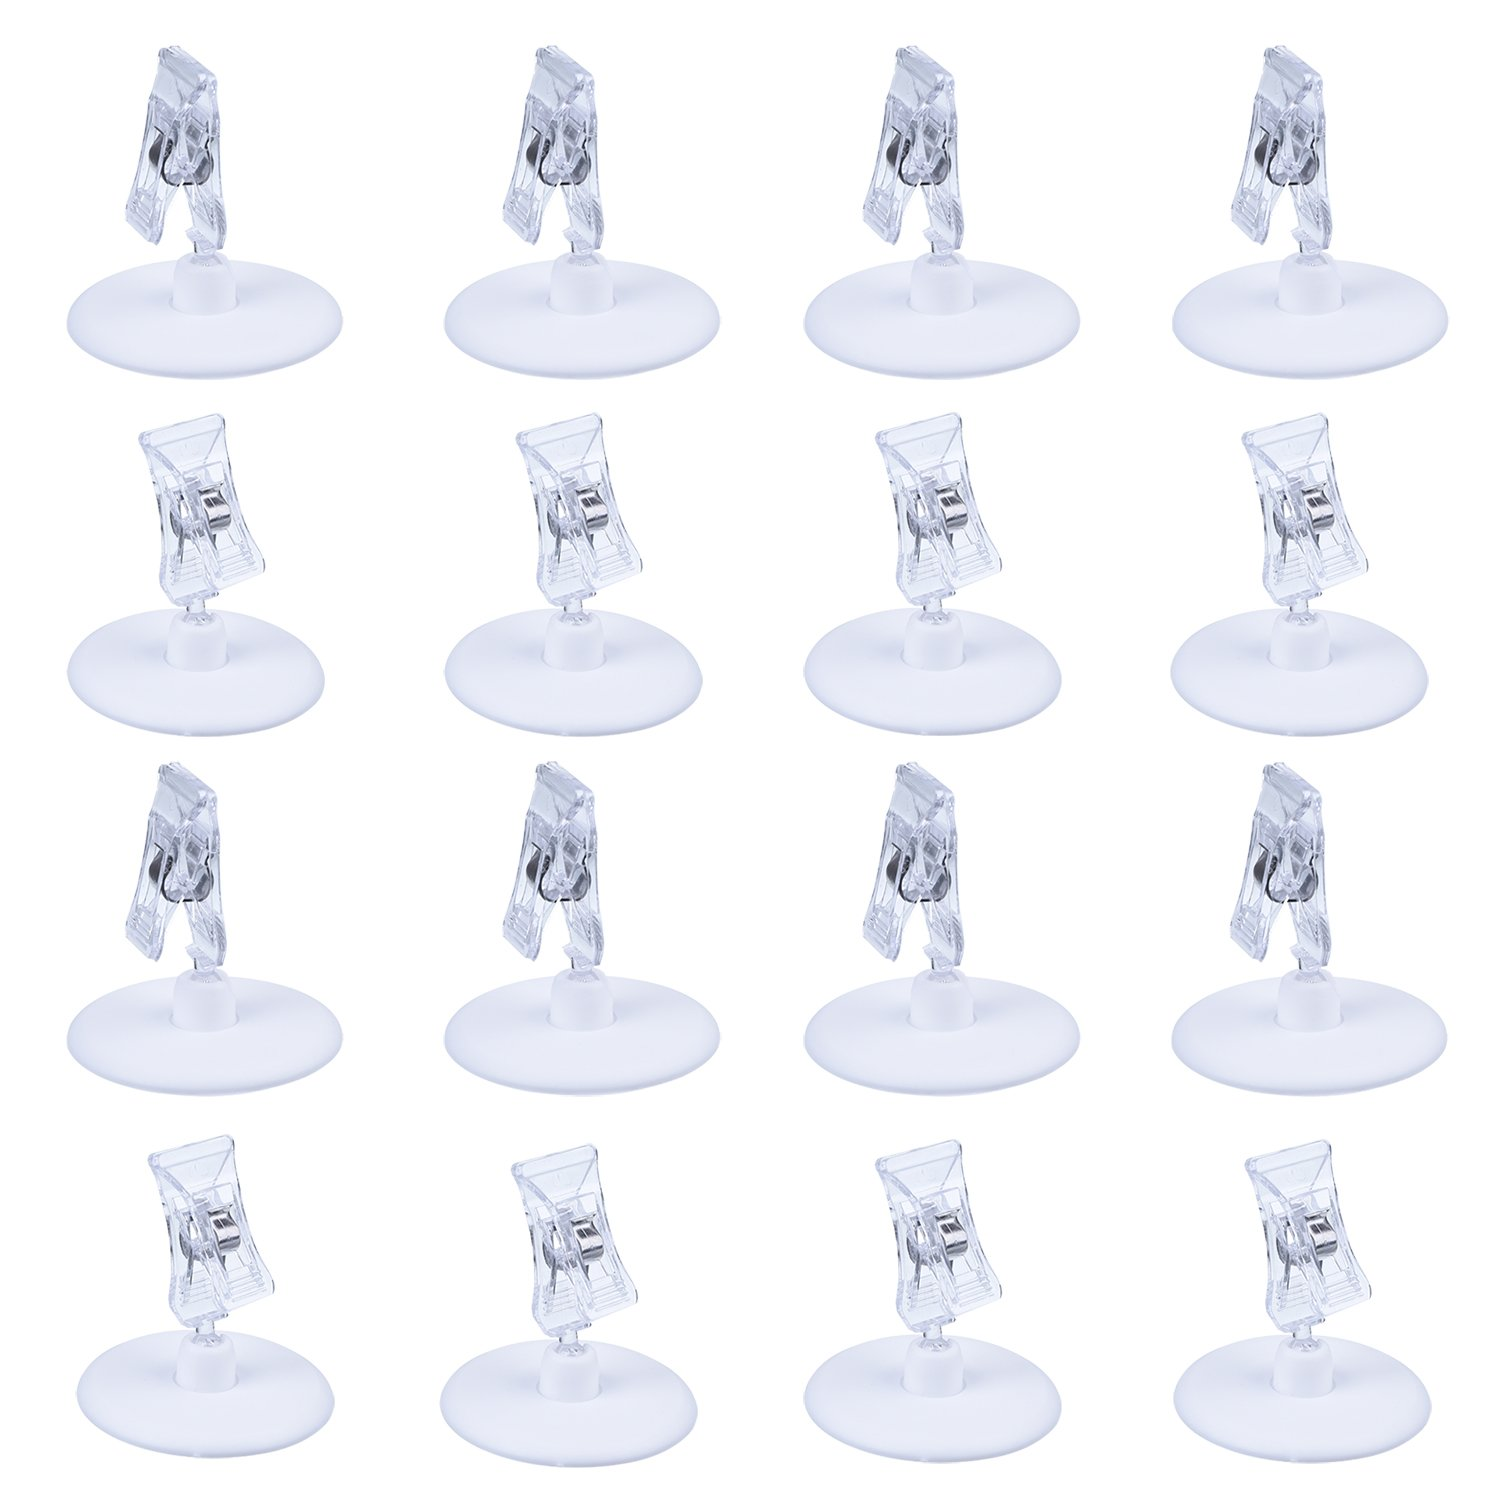 Plastic Rotatable Sign Clips 15 Pack Merchandise Sign Pop Clip Display Clip-on Sign Holder Stand Price Clear by Meiso